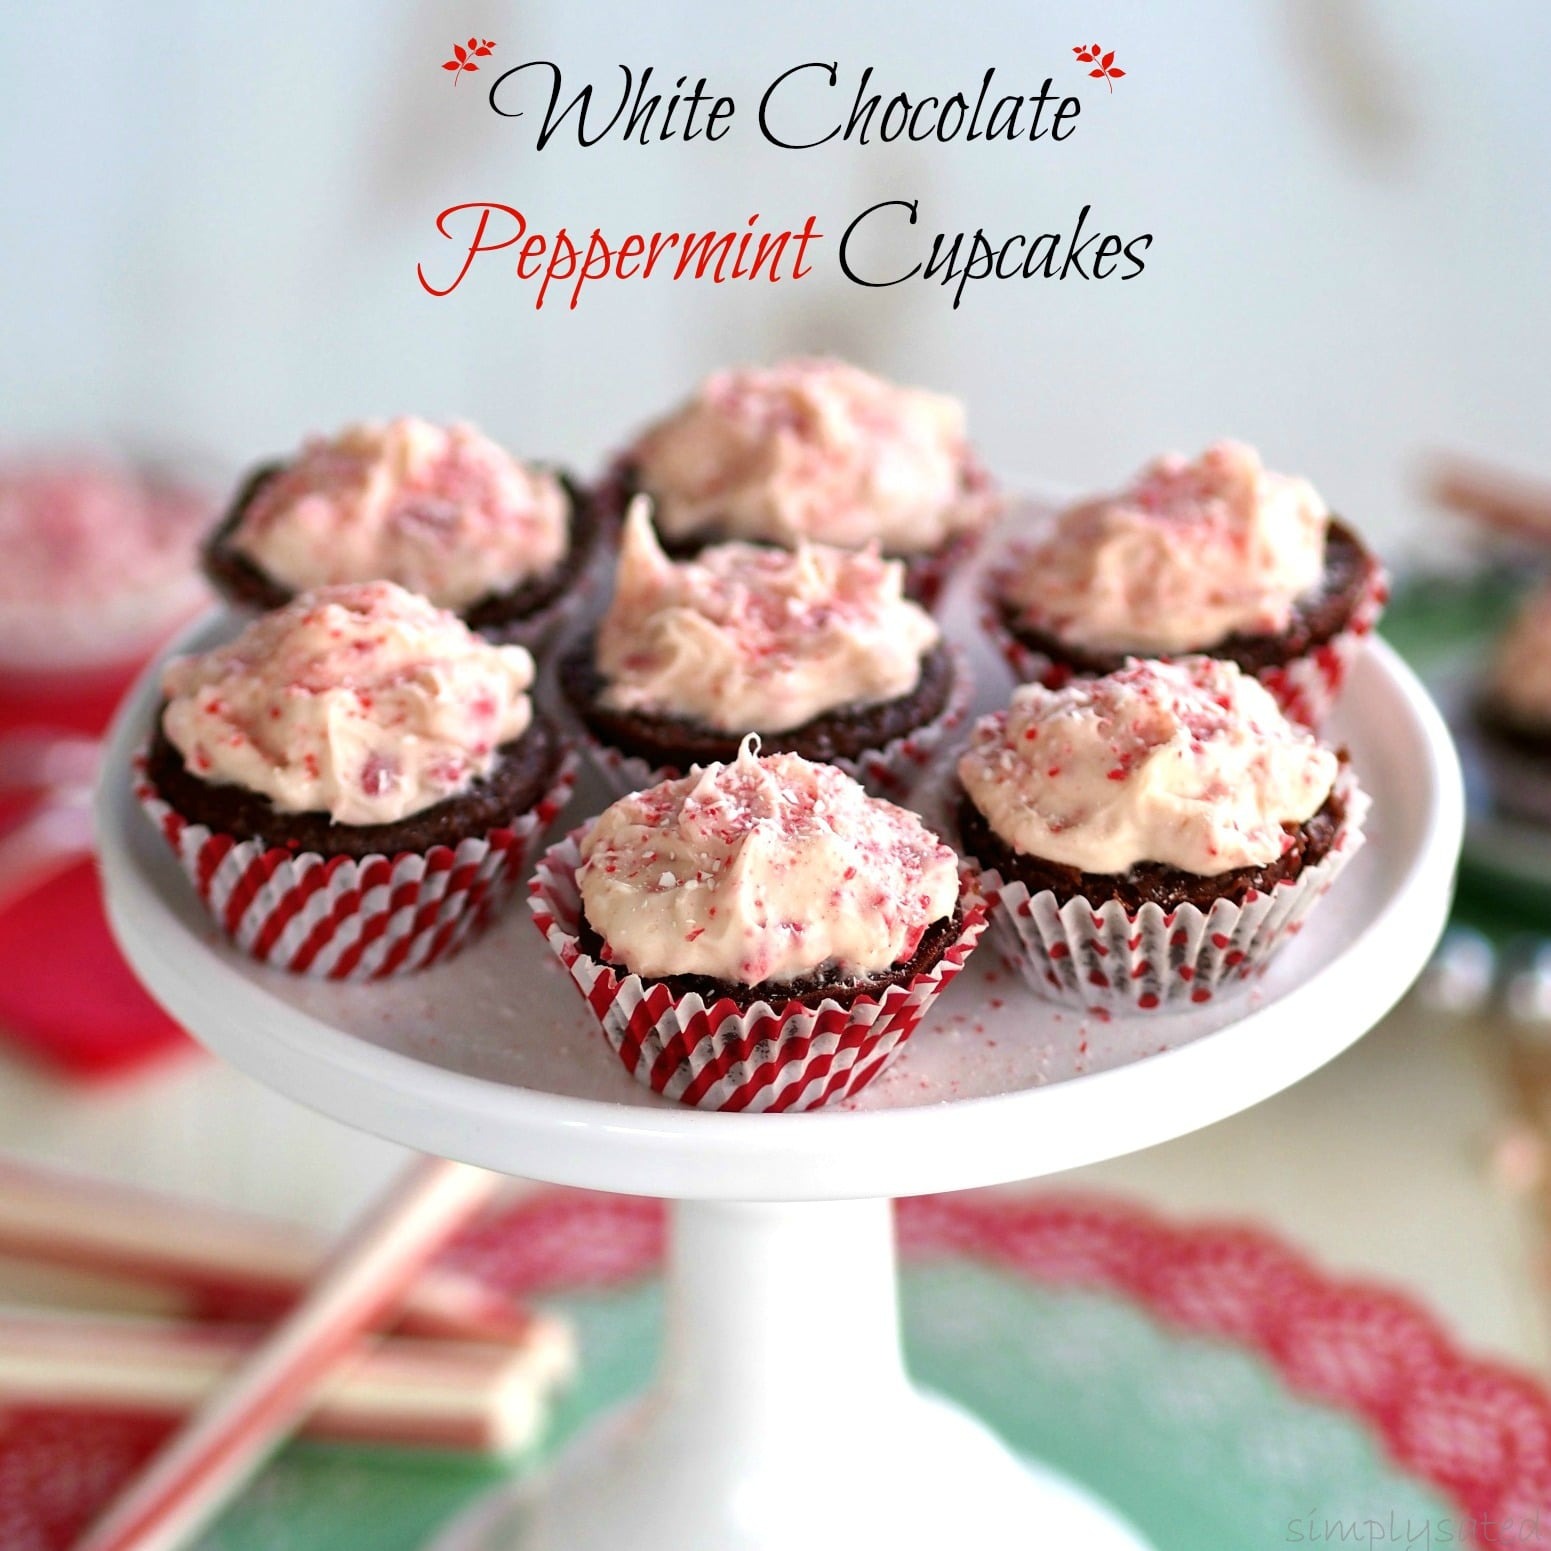 White Chocolate Peppermint Chocolate Cupcakes -Velvety chocolate cupcakes with easy white chocolate, peppermint icing.